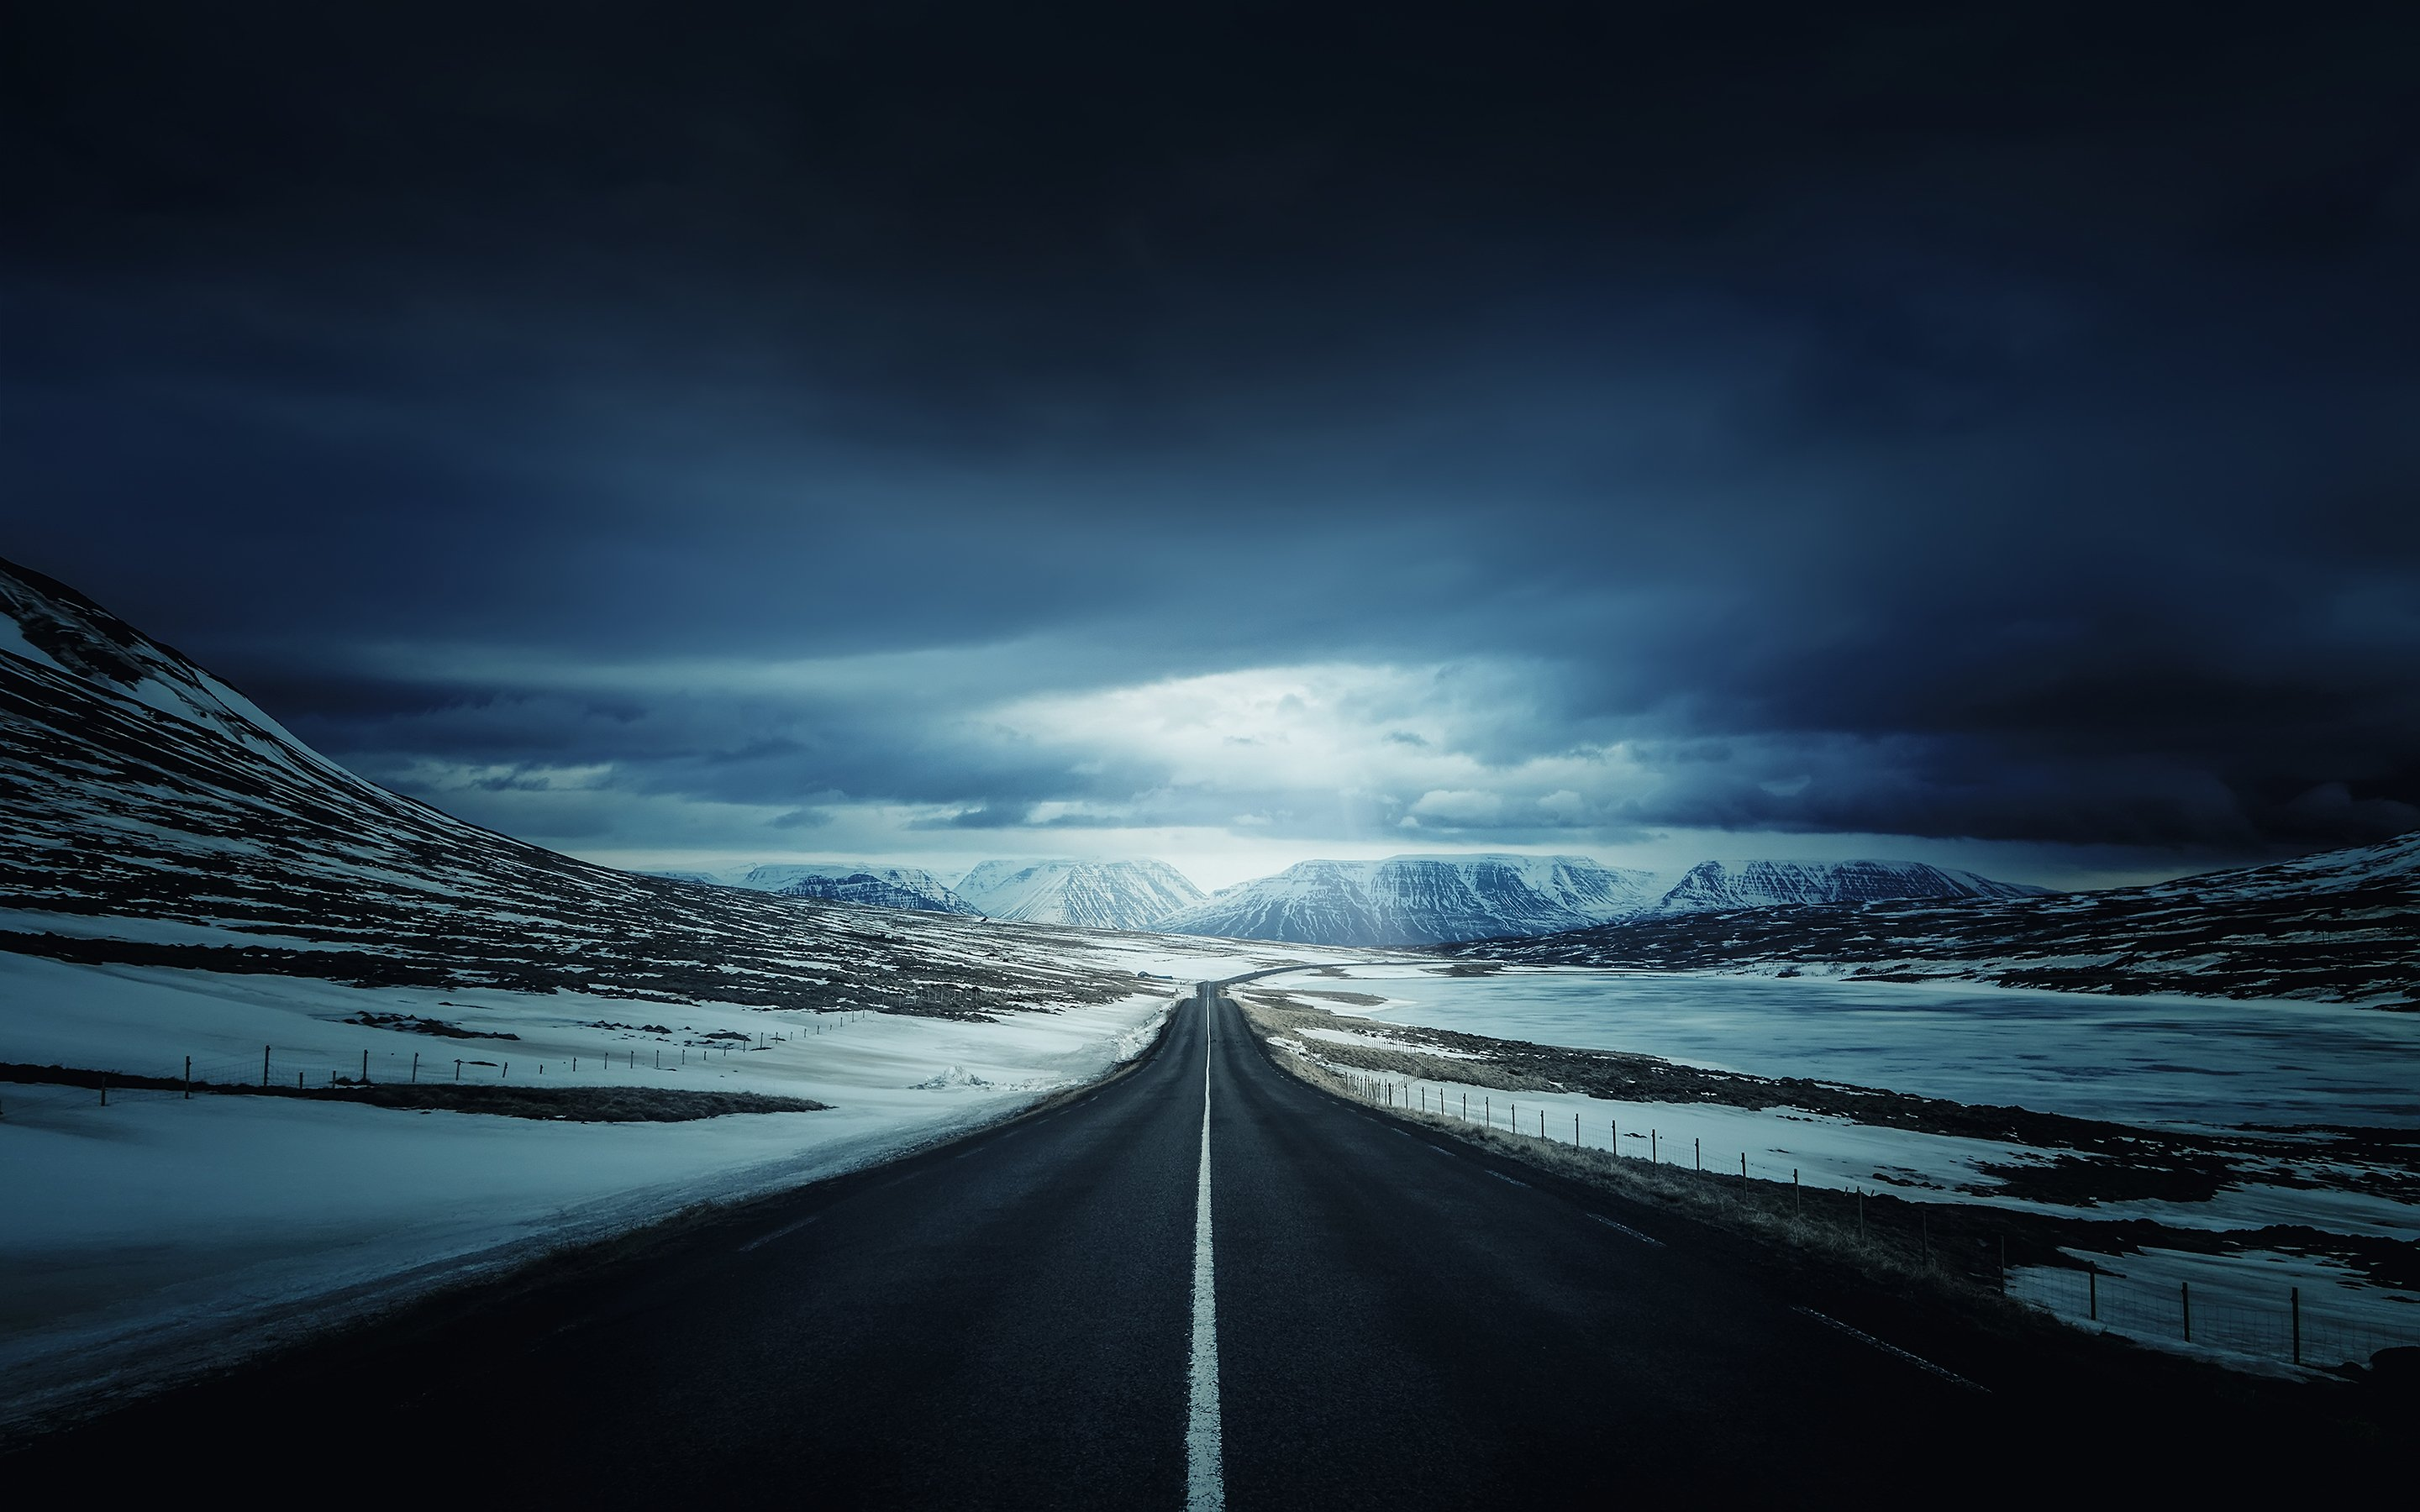 Icelands Ring Road Wallpapers HD Wallpapers 2880x1800